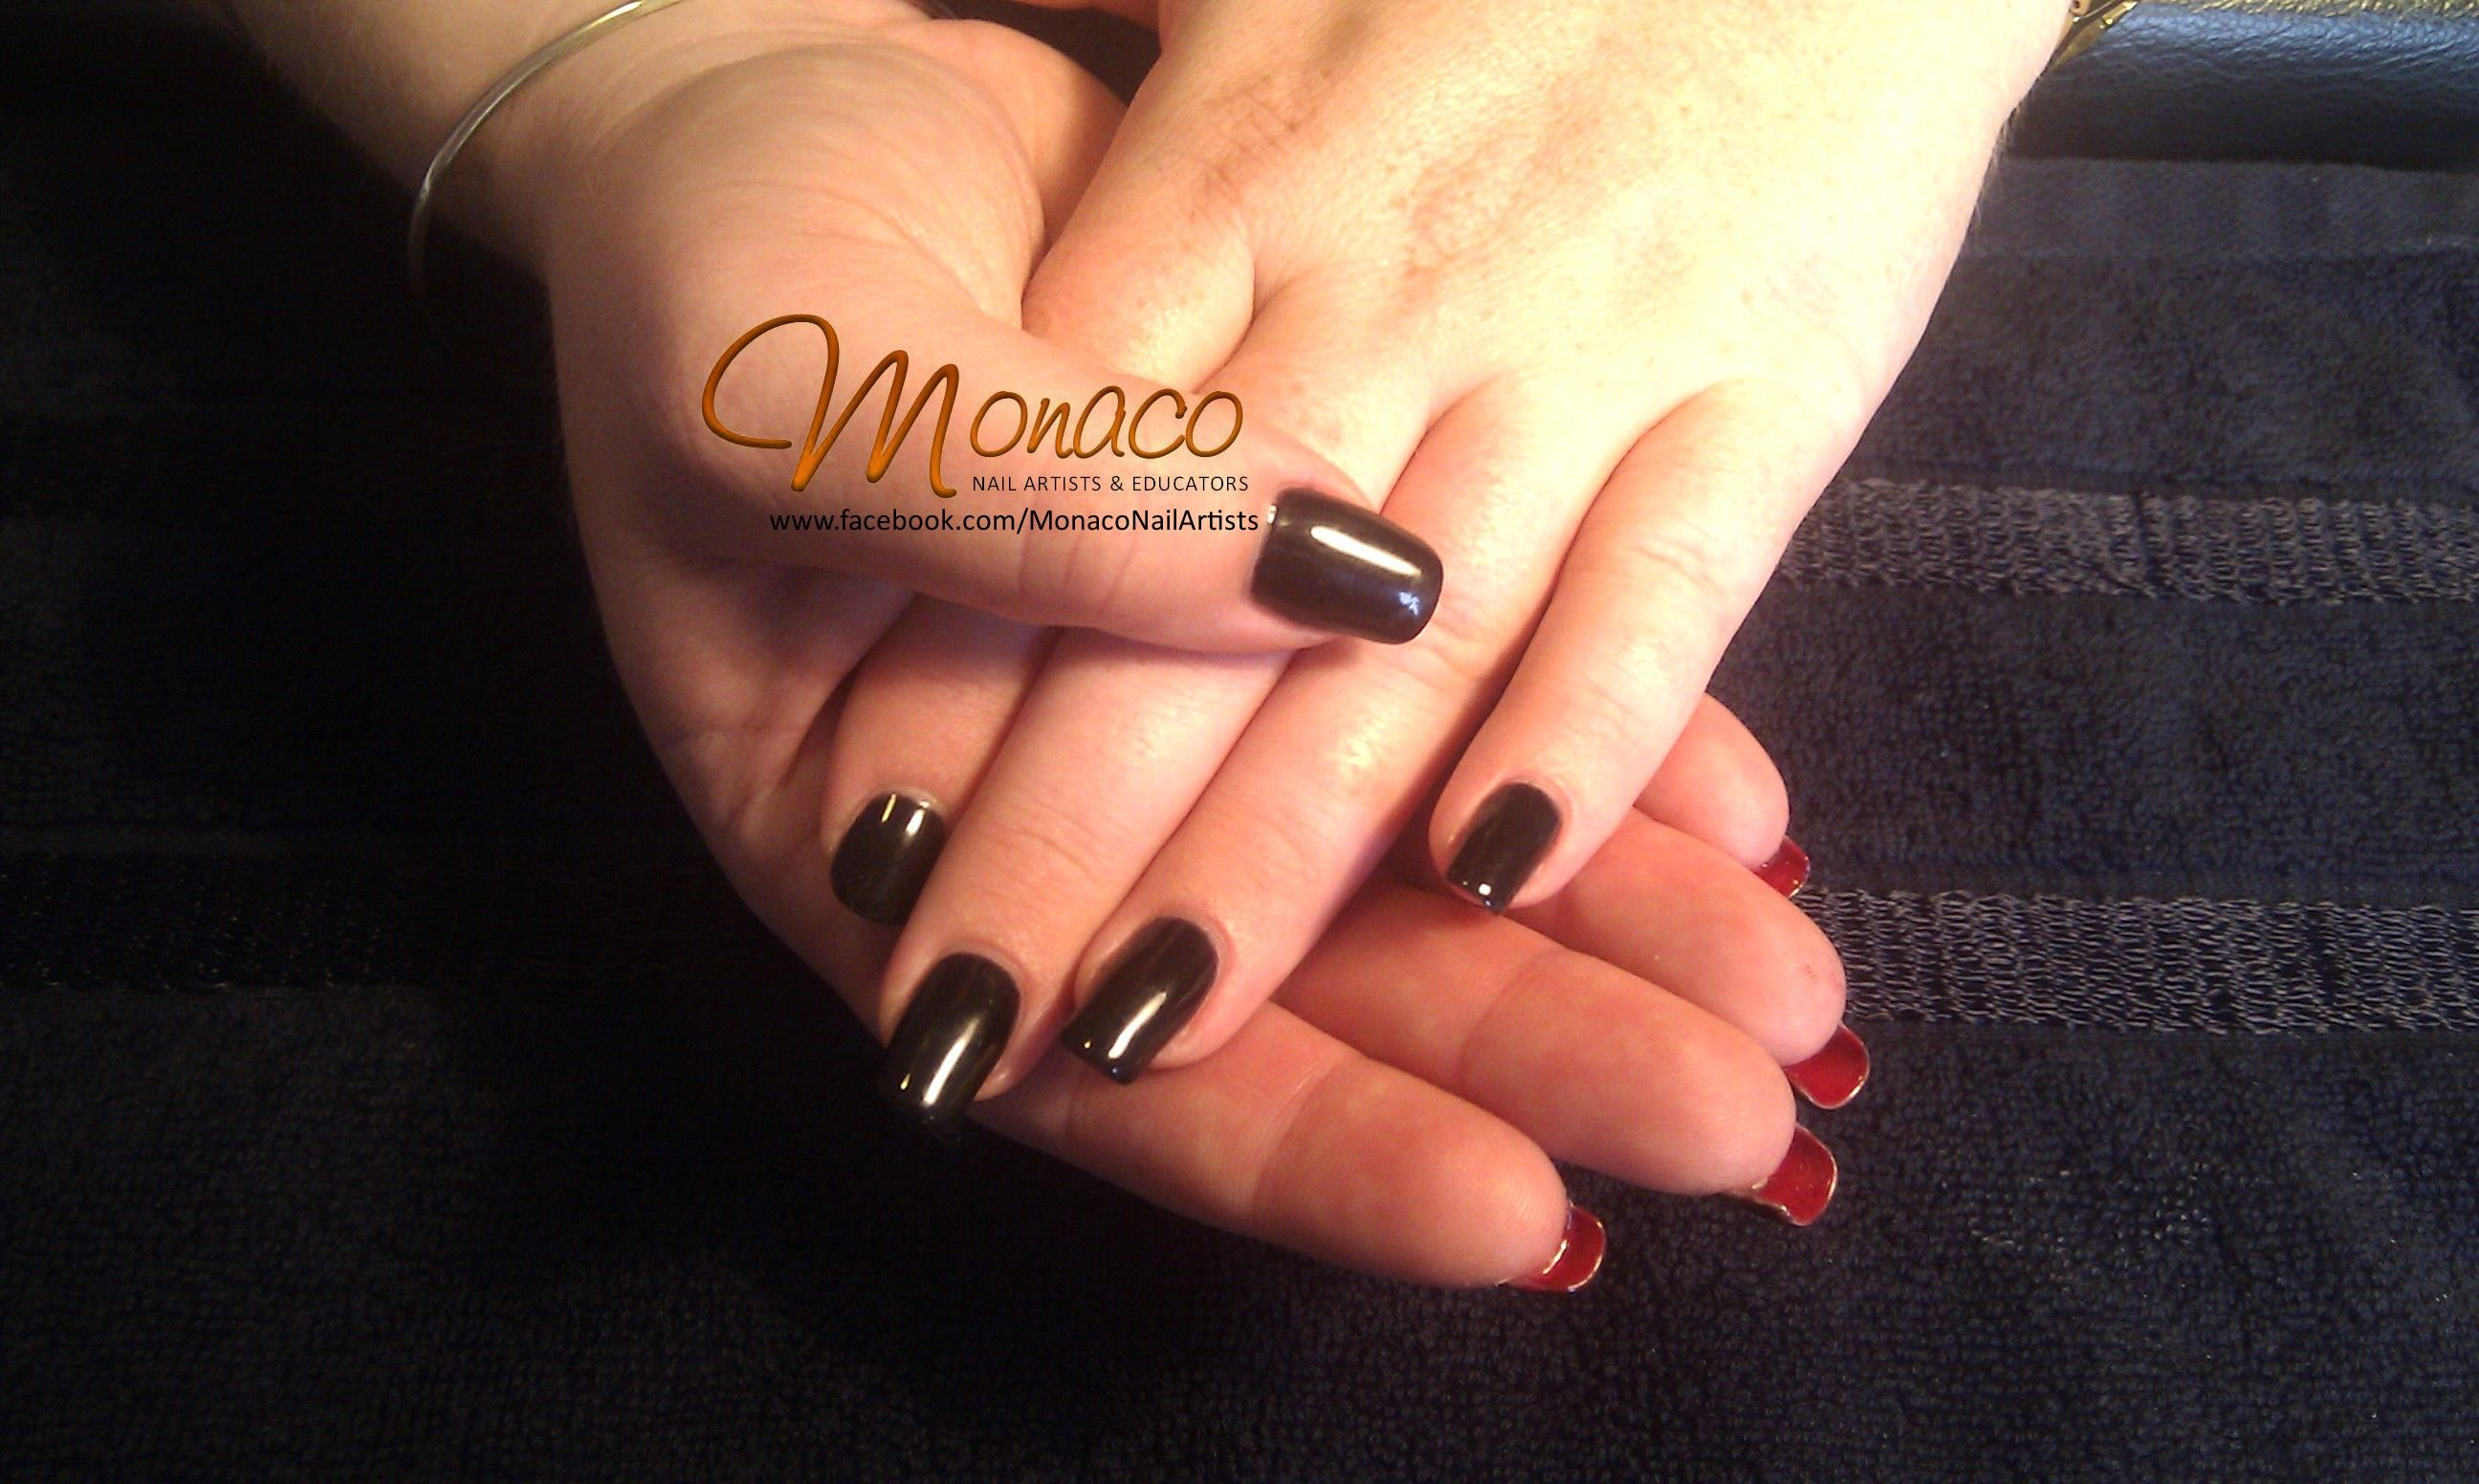 Pin by MonacoPro.co.nz on Beauty Manicures and Nail Art